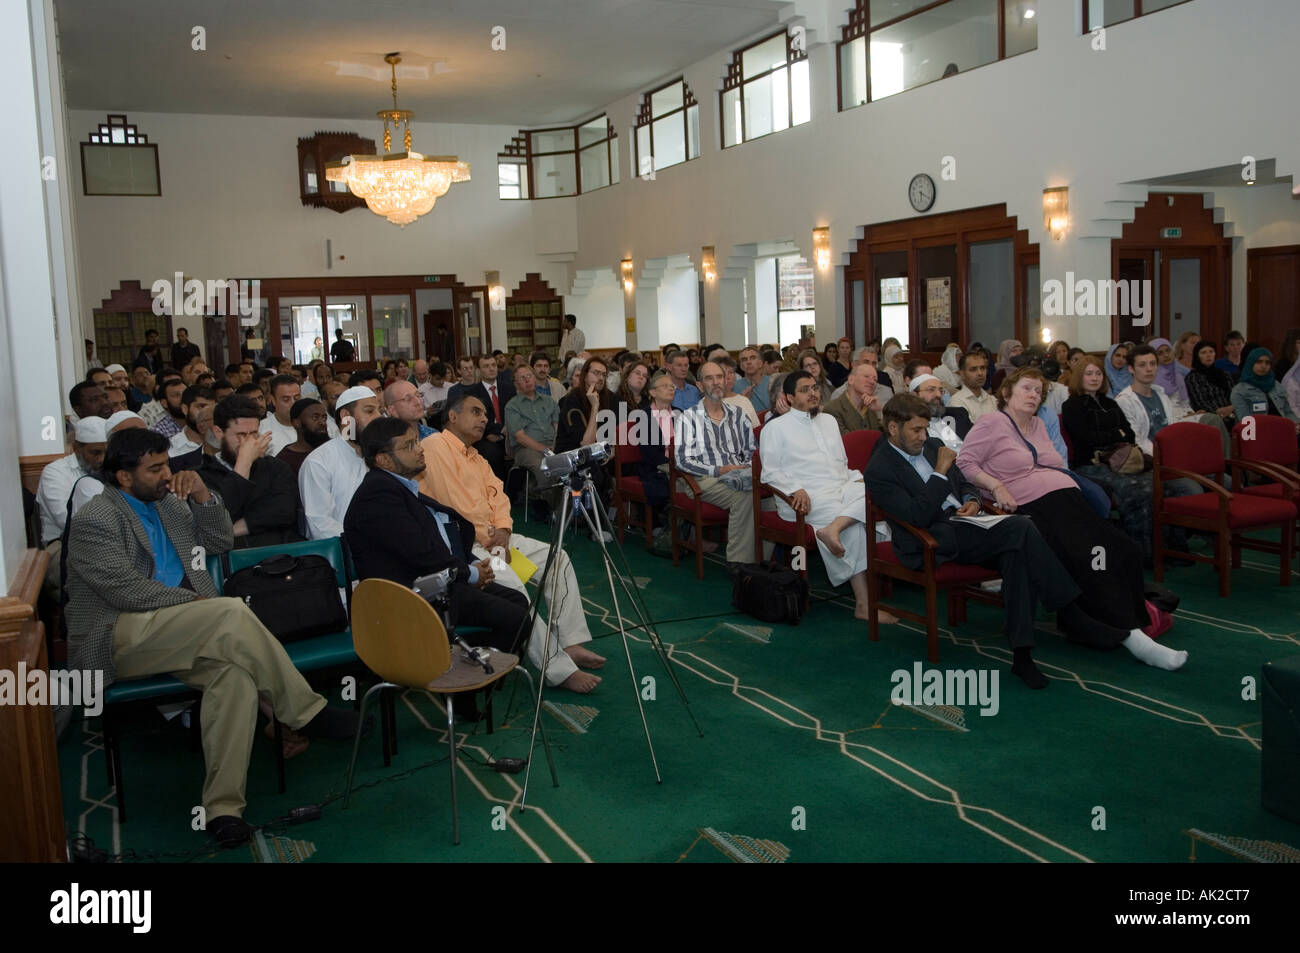 Audience at a conference in Edinburgh Central Mosque, Scotland Stock Photo